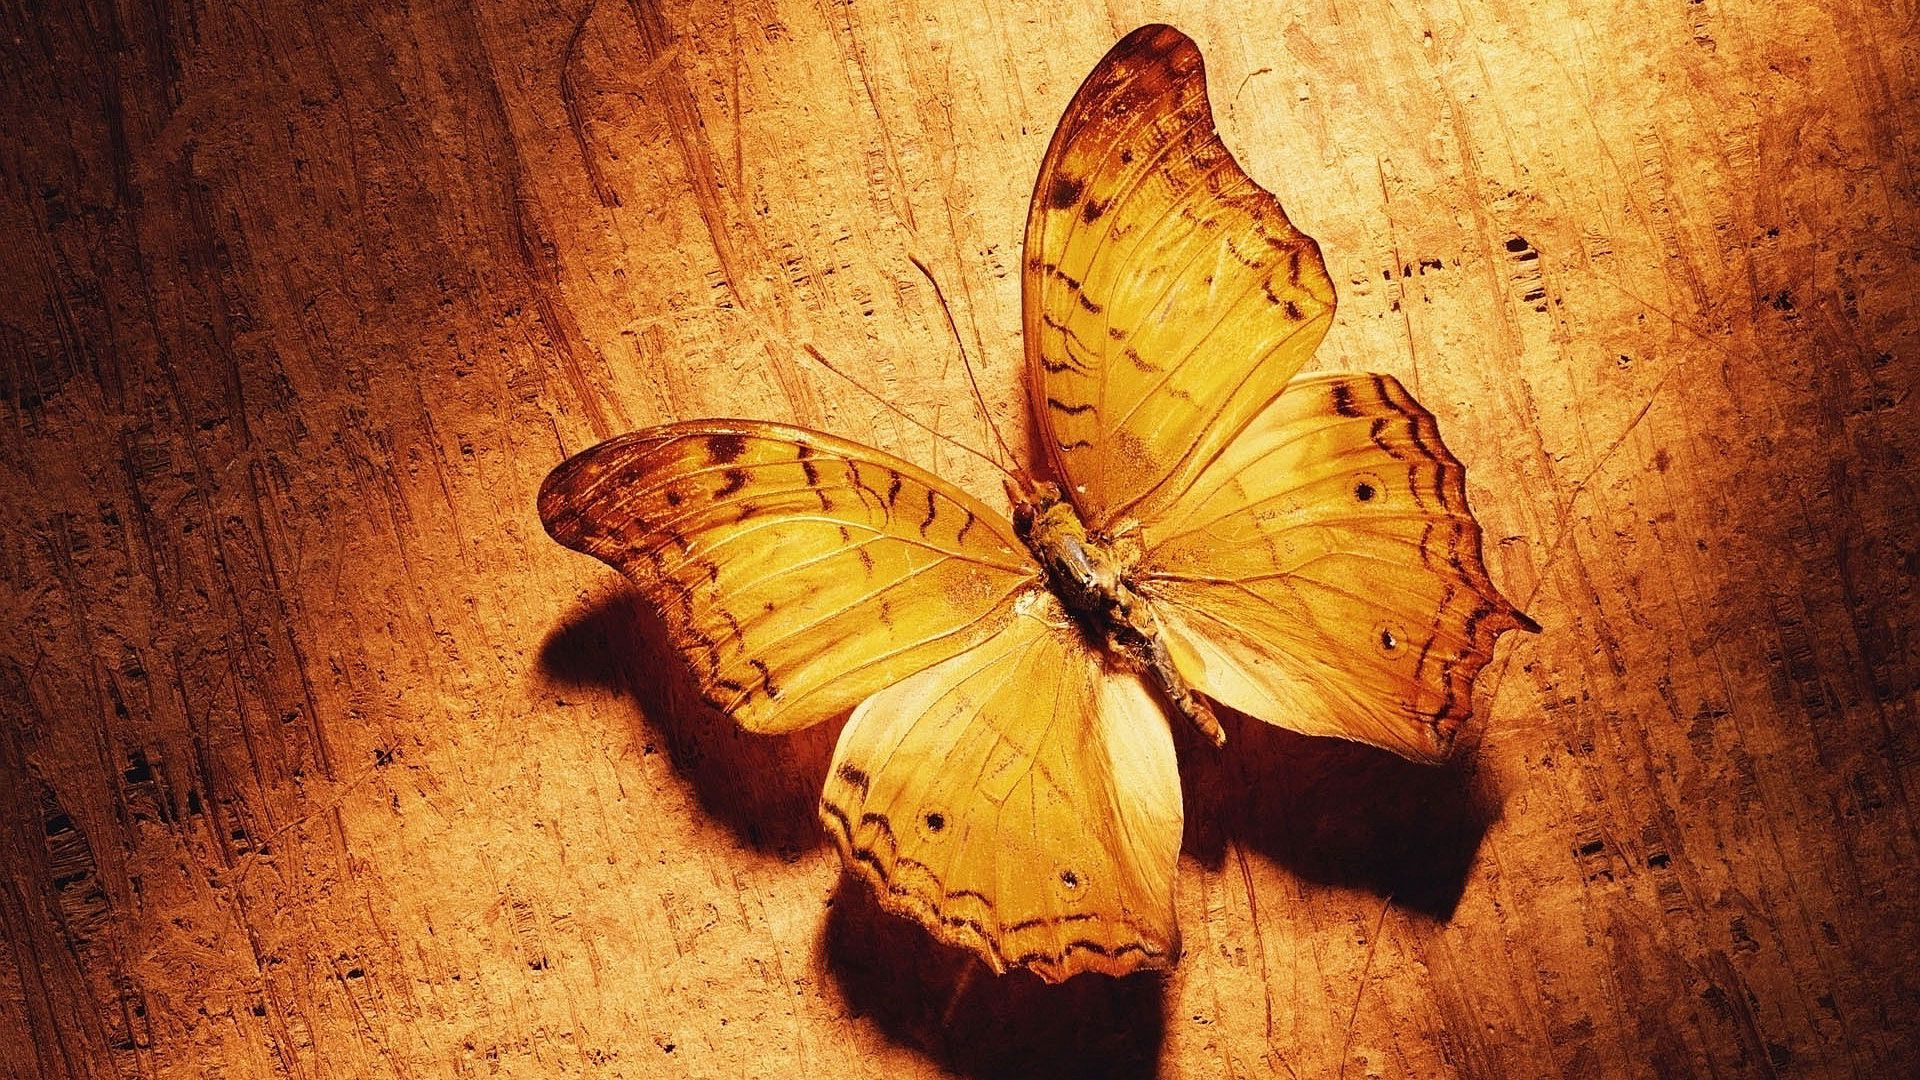 Hd Pics Photos Very Cute Beautiful Butterfly Effects Attractive Hd Quality Desktop Backgroun Brown Butterflies Butterfly Photos Butterfly Wallpaper Backgrounds